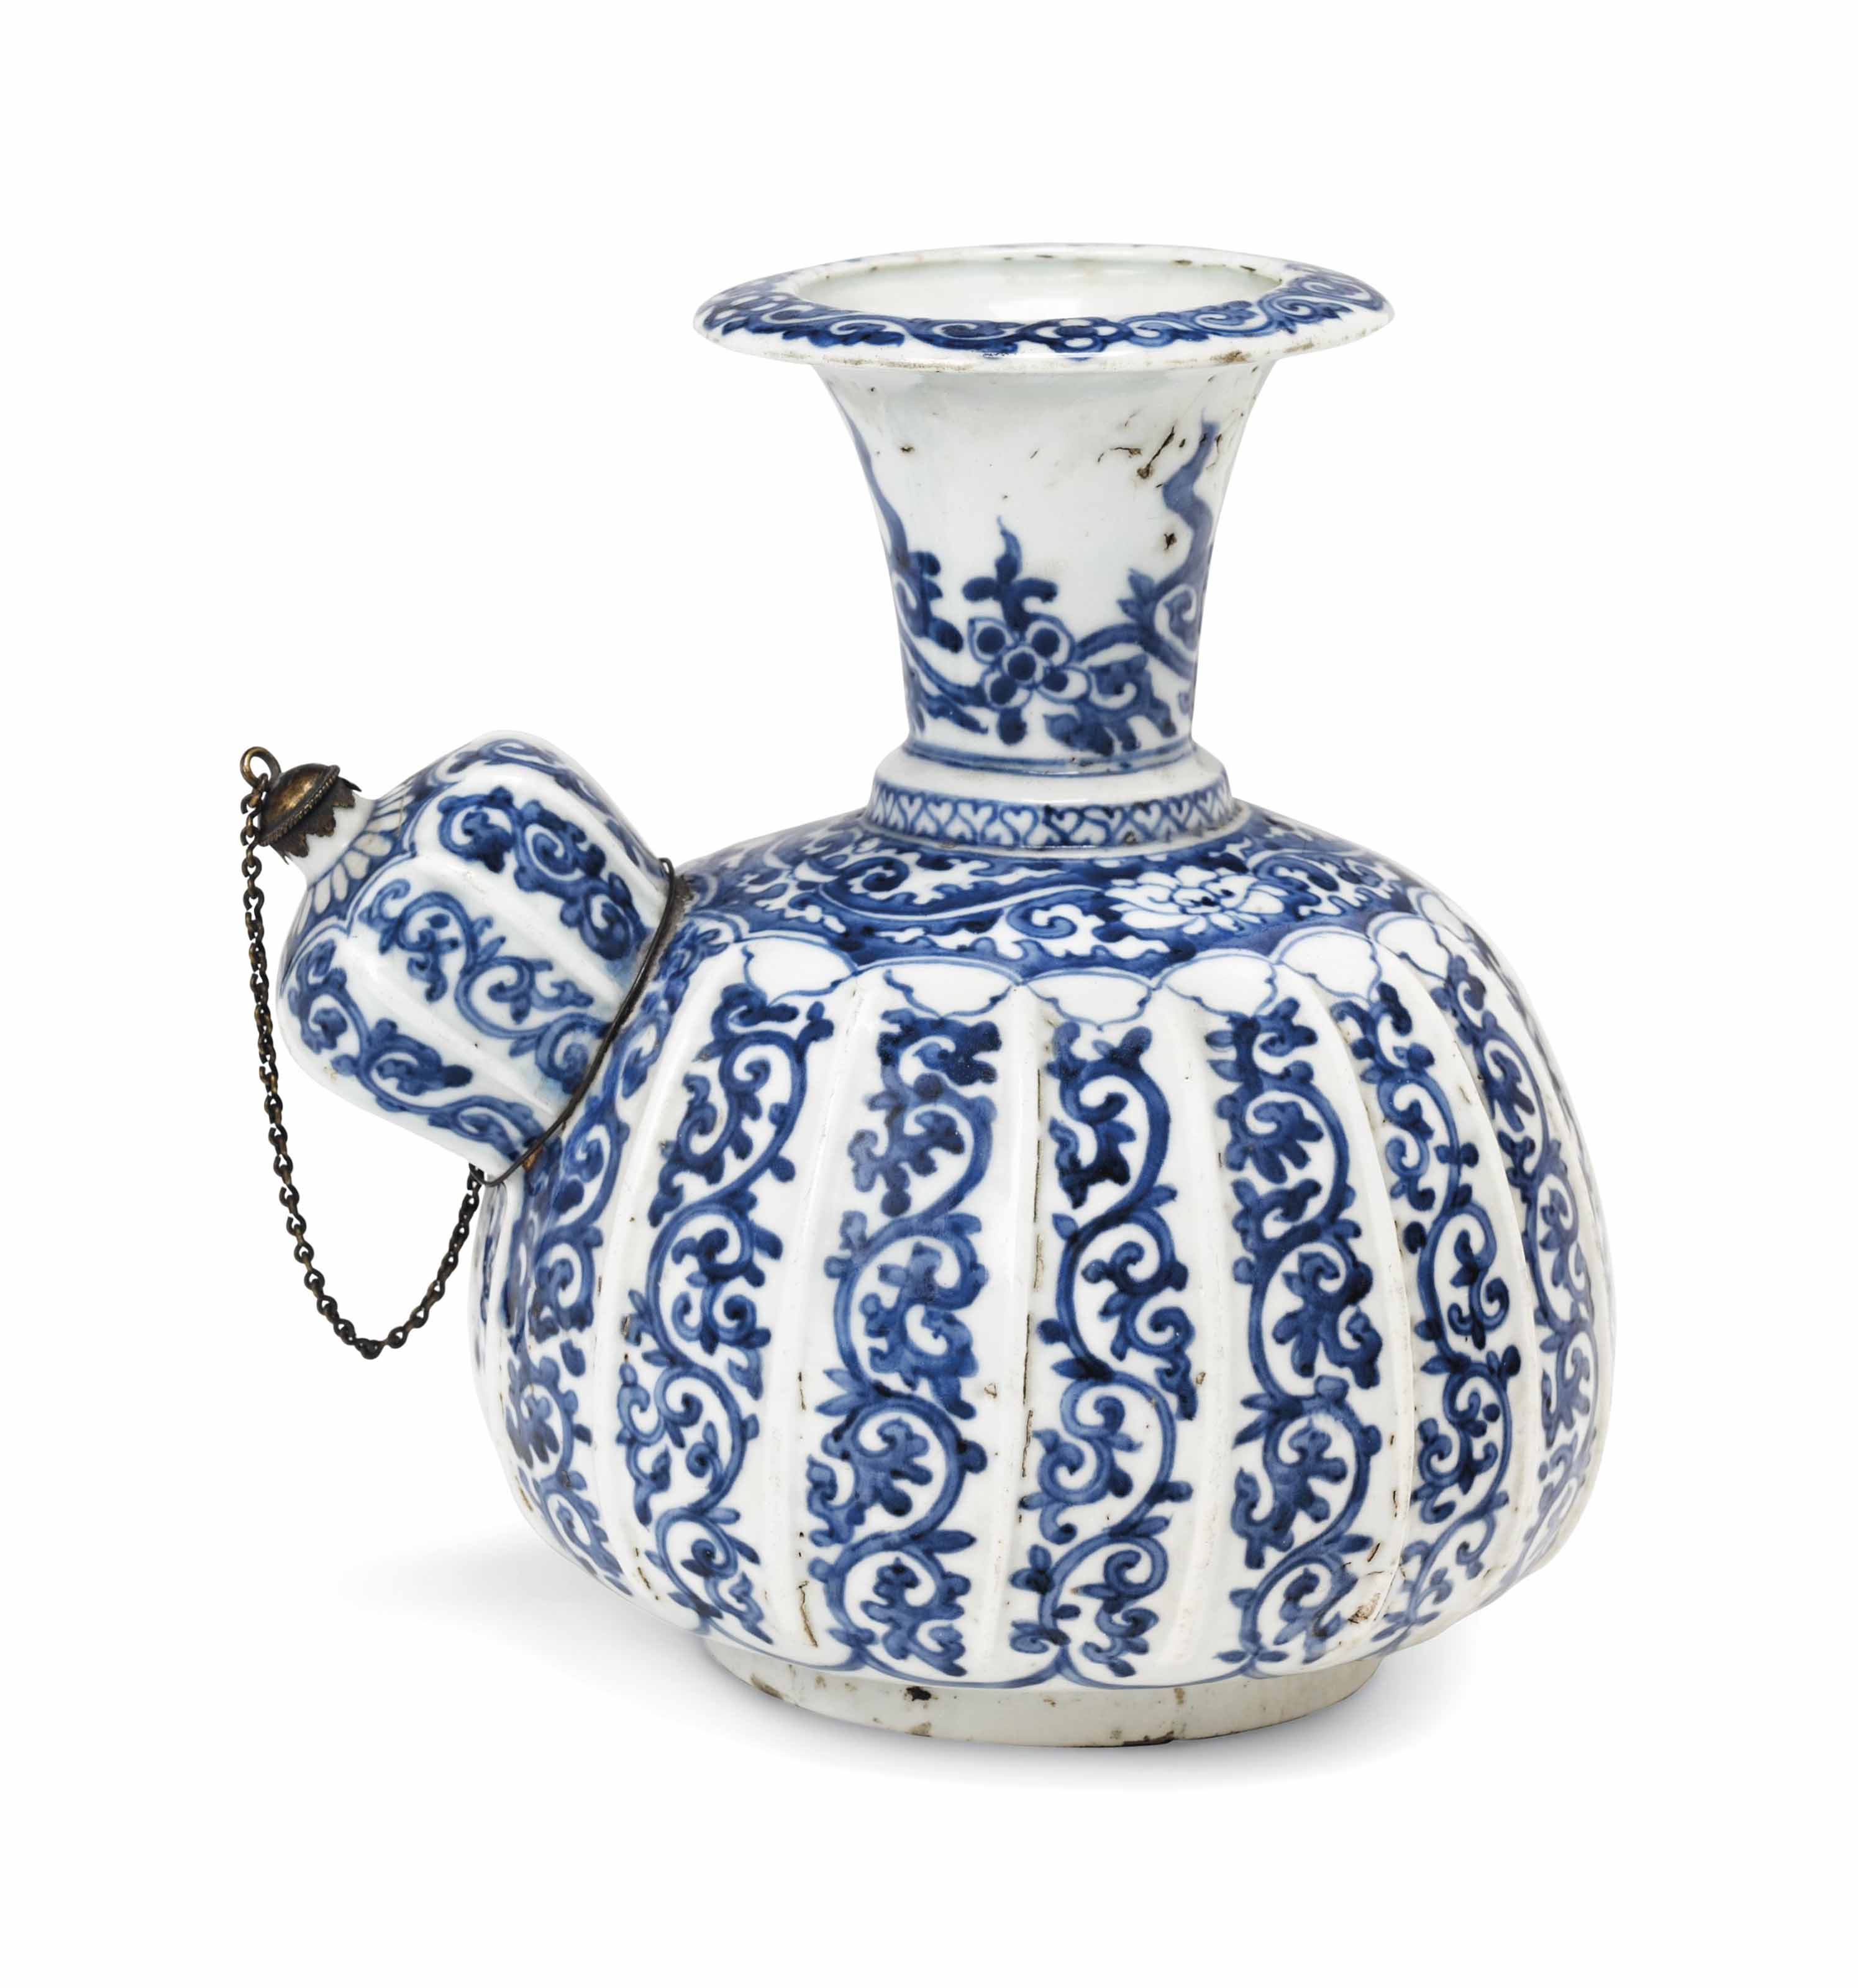 An Early Arita Kendi (Pouring Vessel) for the Vietnamese Market